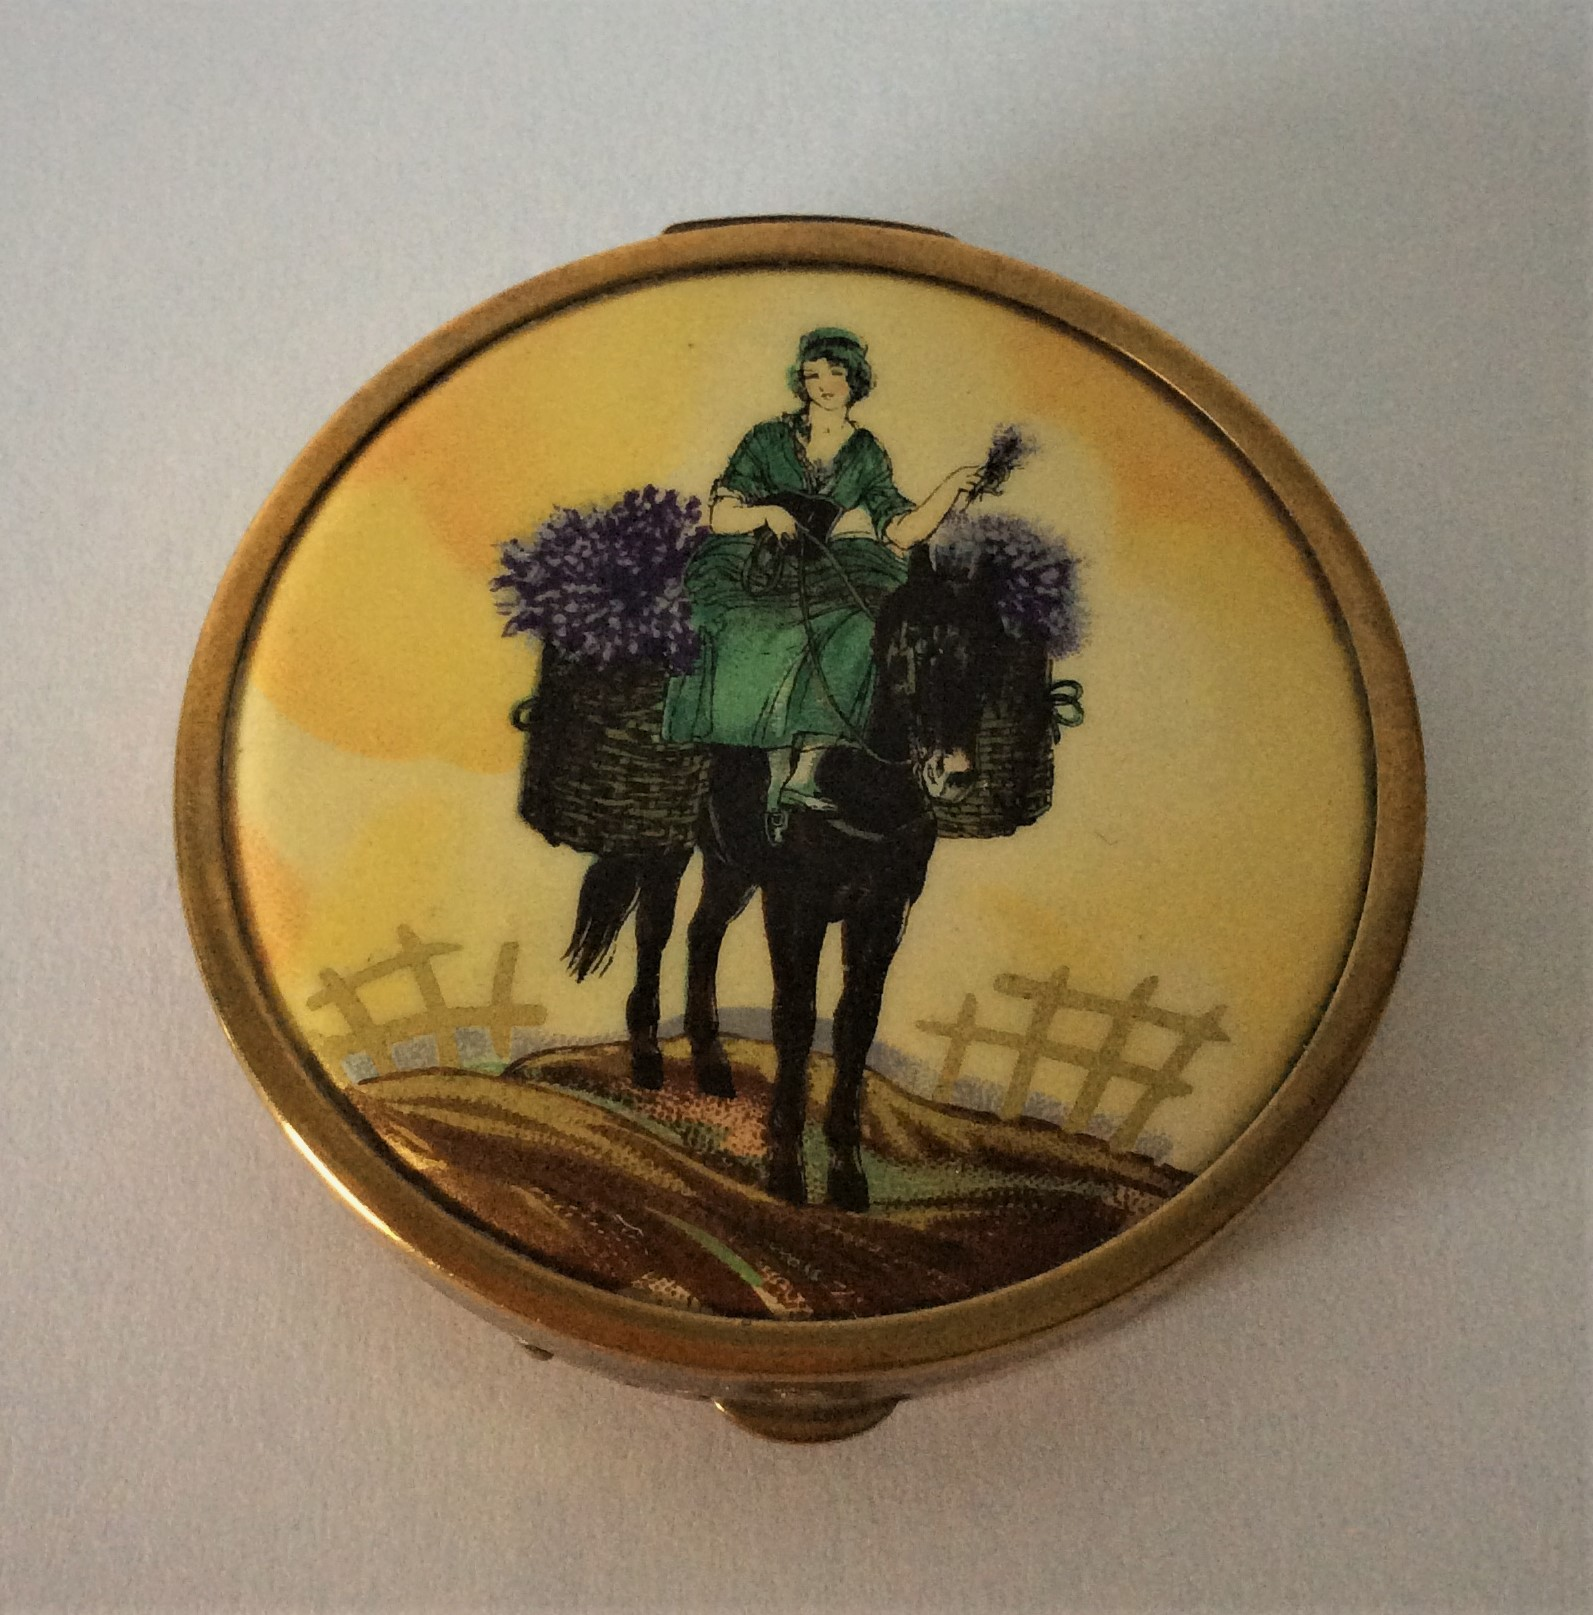 Rare Vintage Potter & Moore 30s Quality Gold Tone Mitcham Lavender Harvest Powder Compact complete with signed puff and original label still attached in powder well.  Size 2 inches